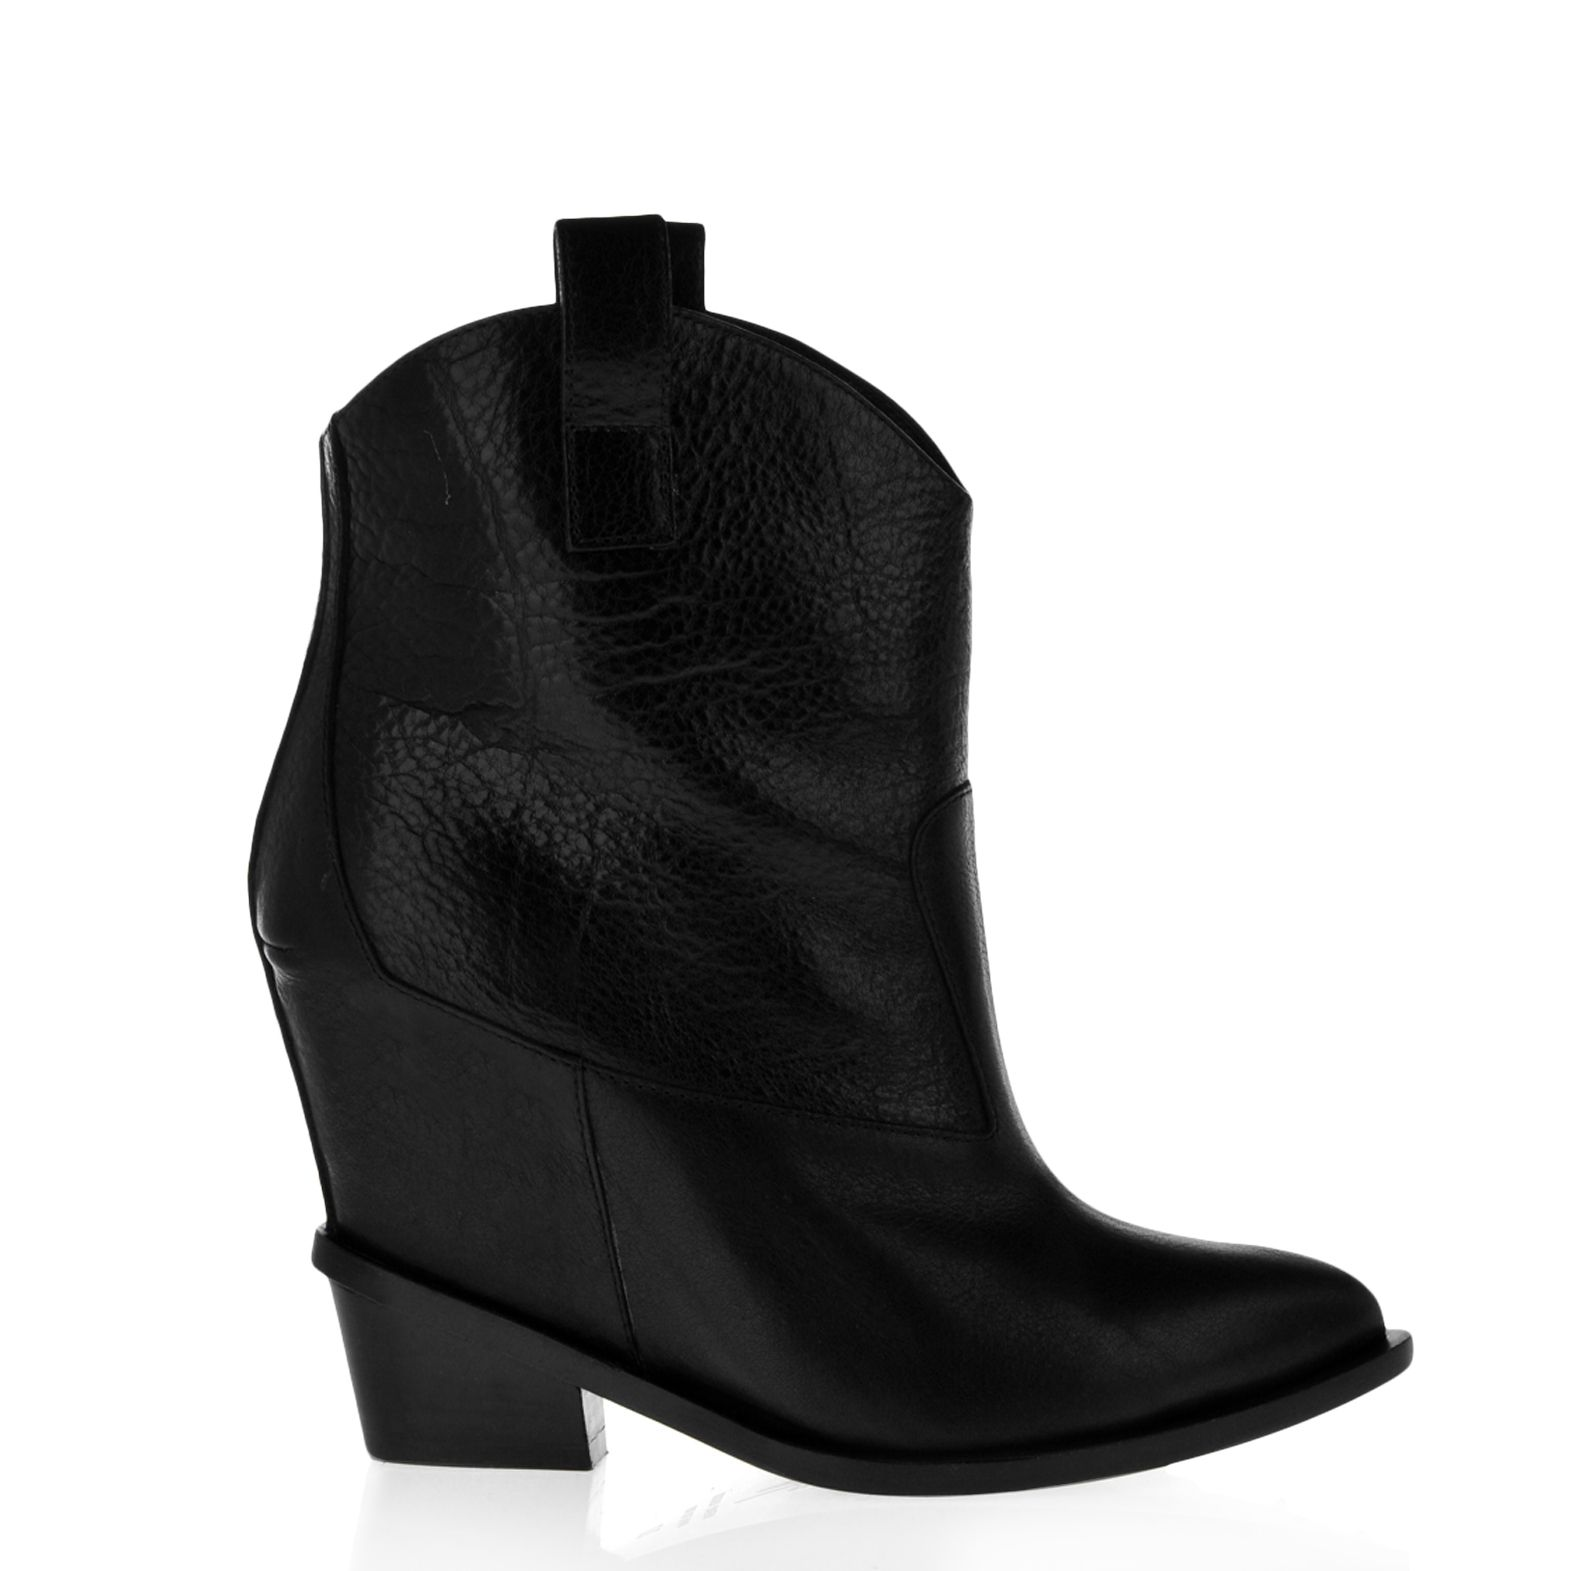 Zanotti-booties-black-3